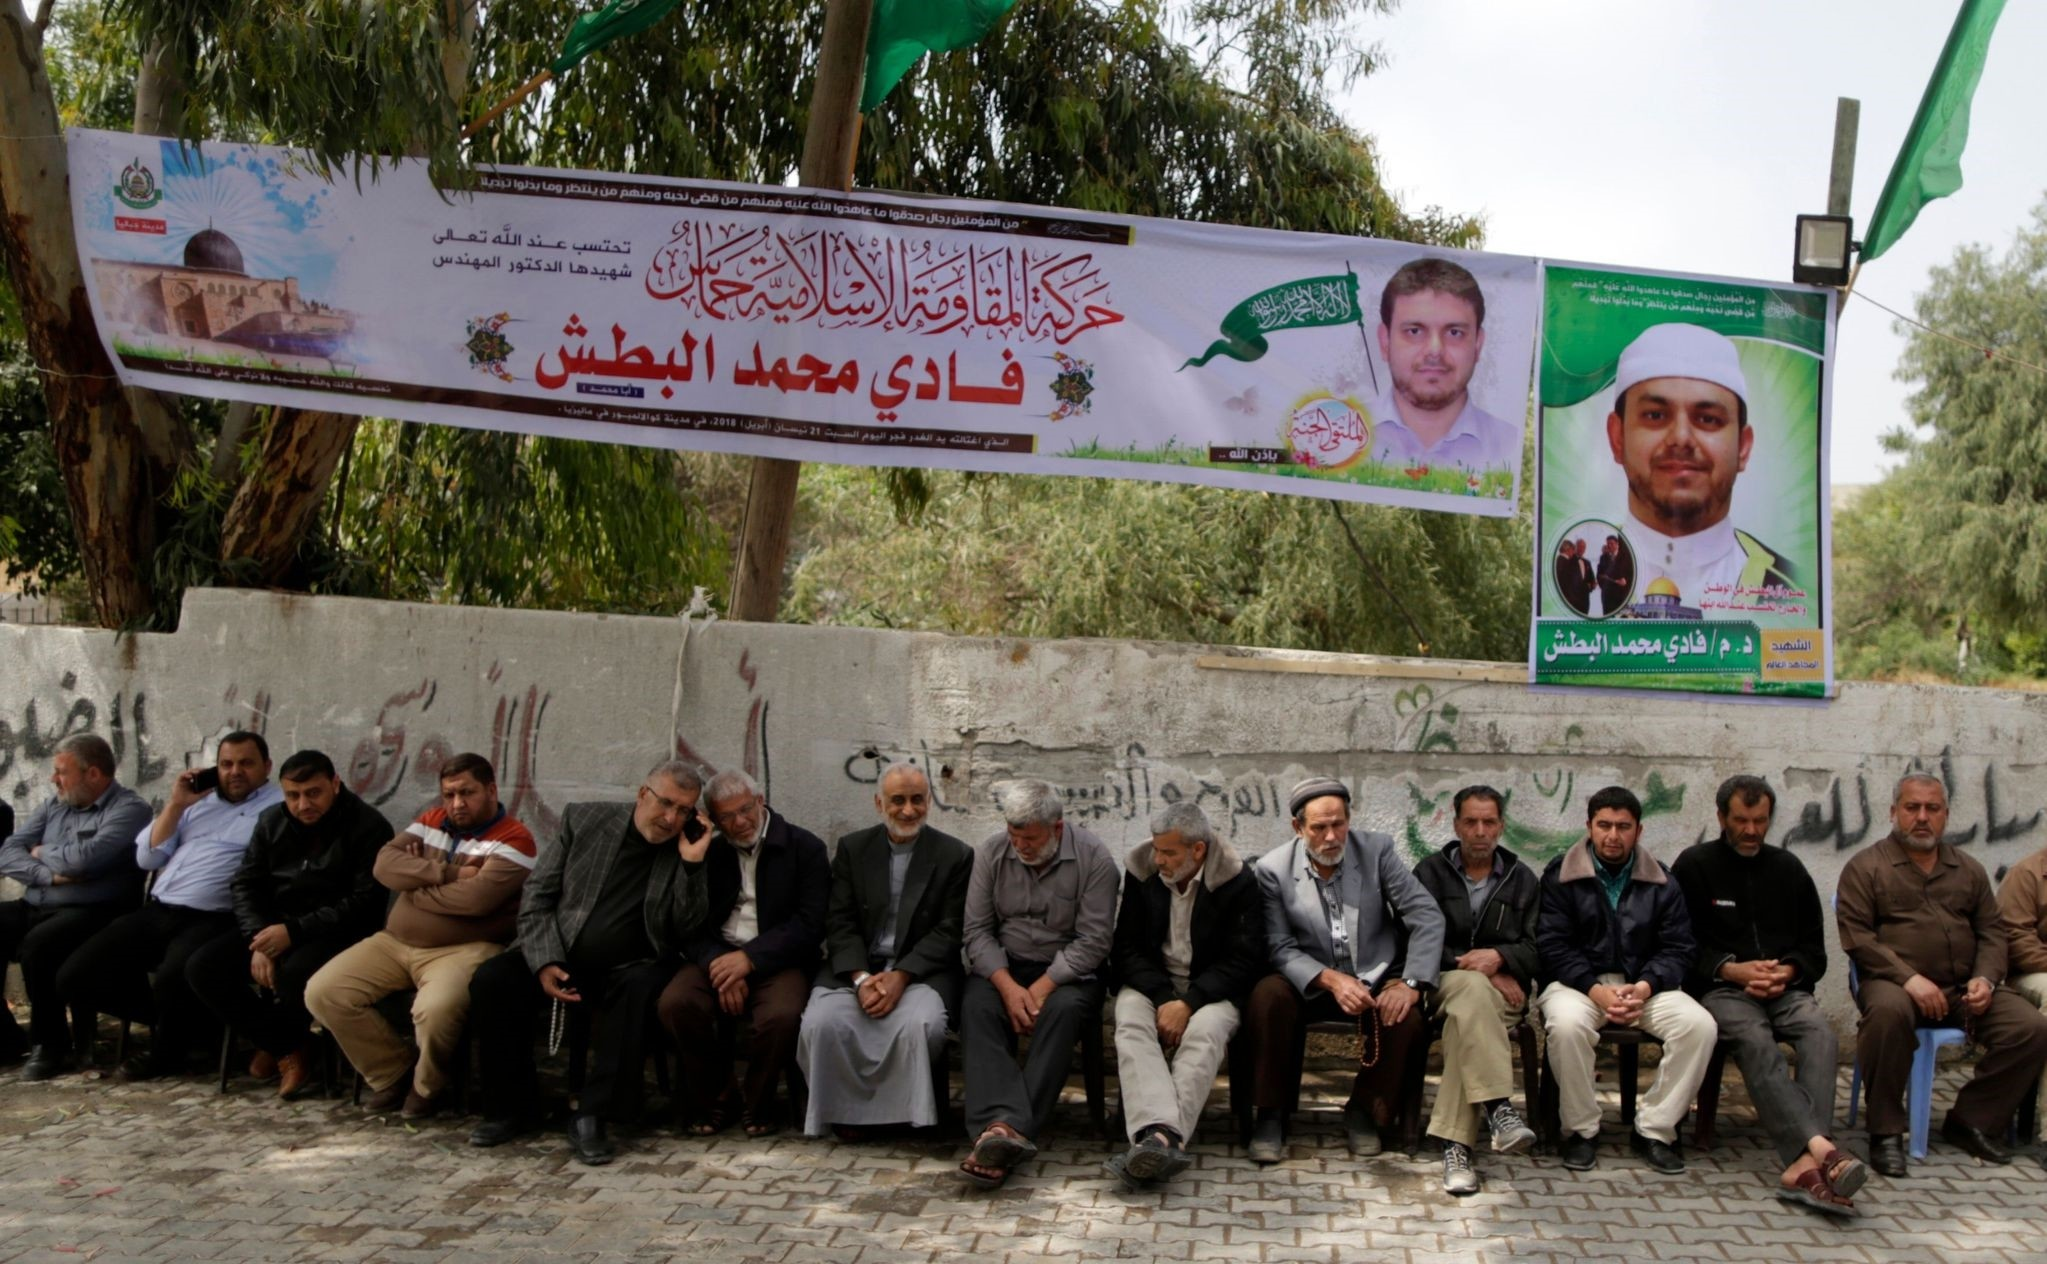 Palestinians gather in mourning outside the family home of 35-year-old professor and Hamas member Fadi Mohammad al-Batsh, who was killed early in the day in Malaysia, in Jabalia in the northern Gaza strip. (AFP Photo)